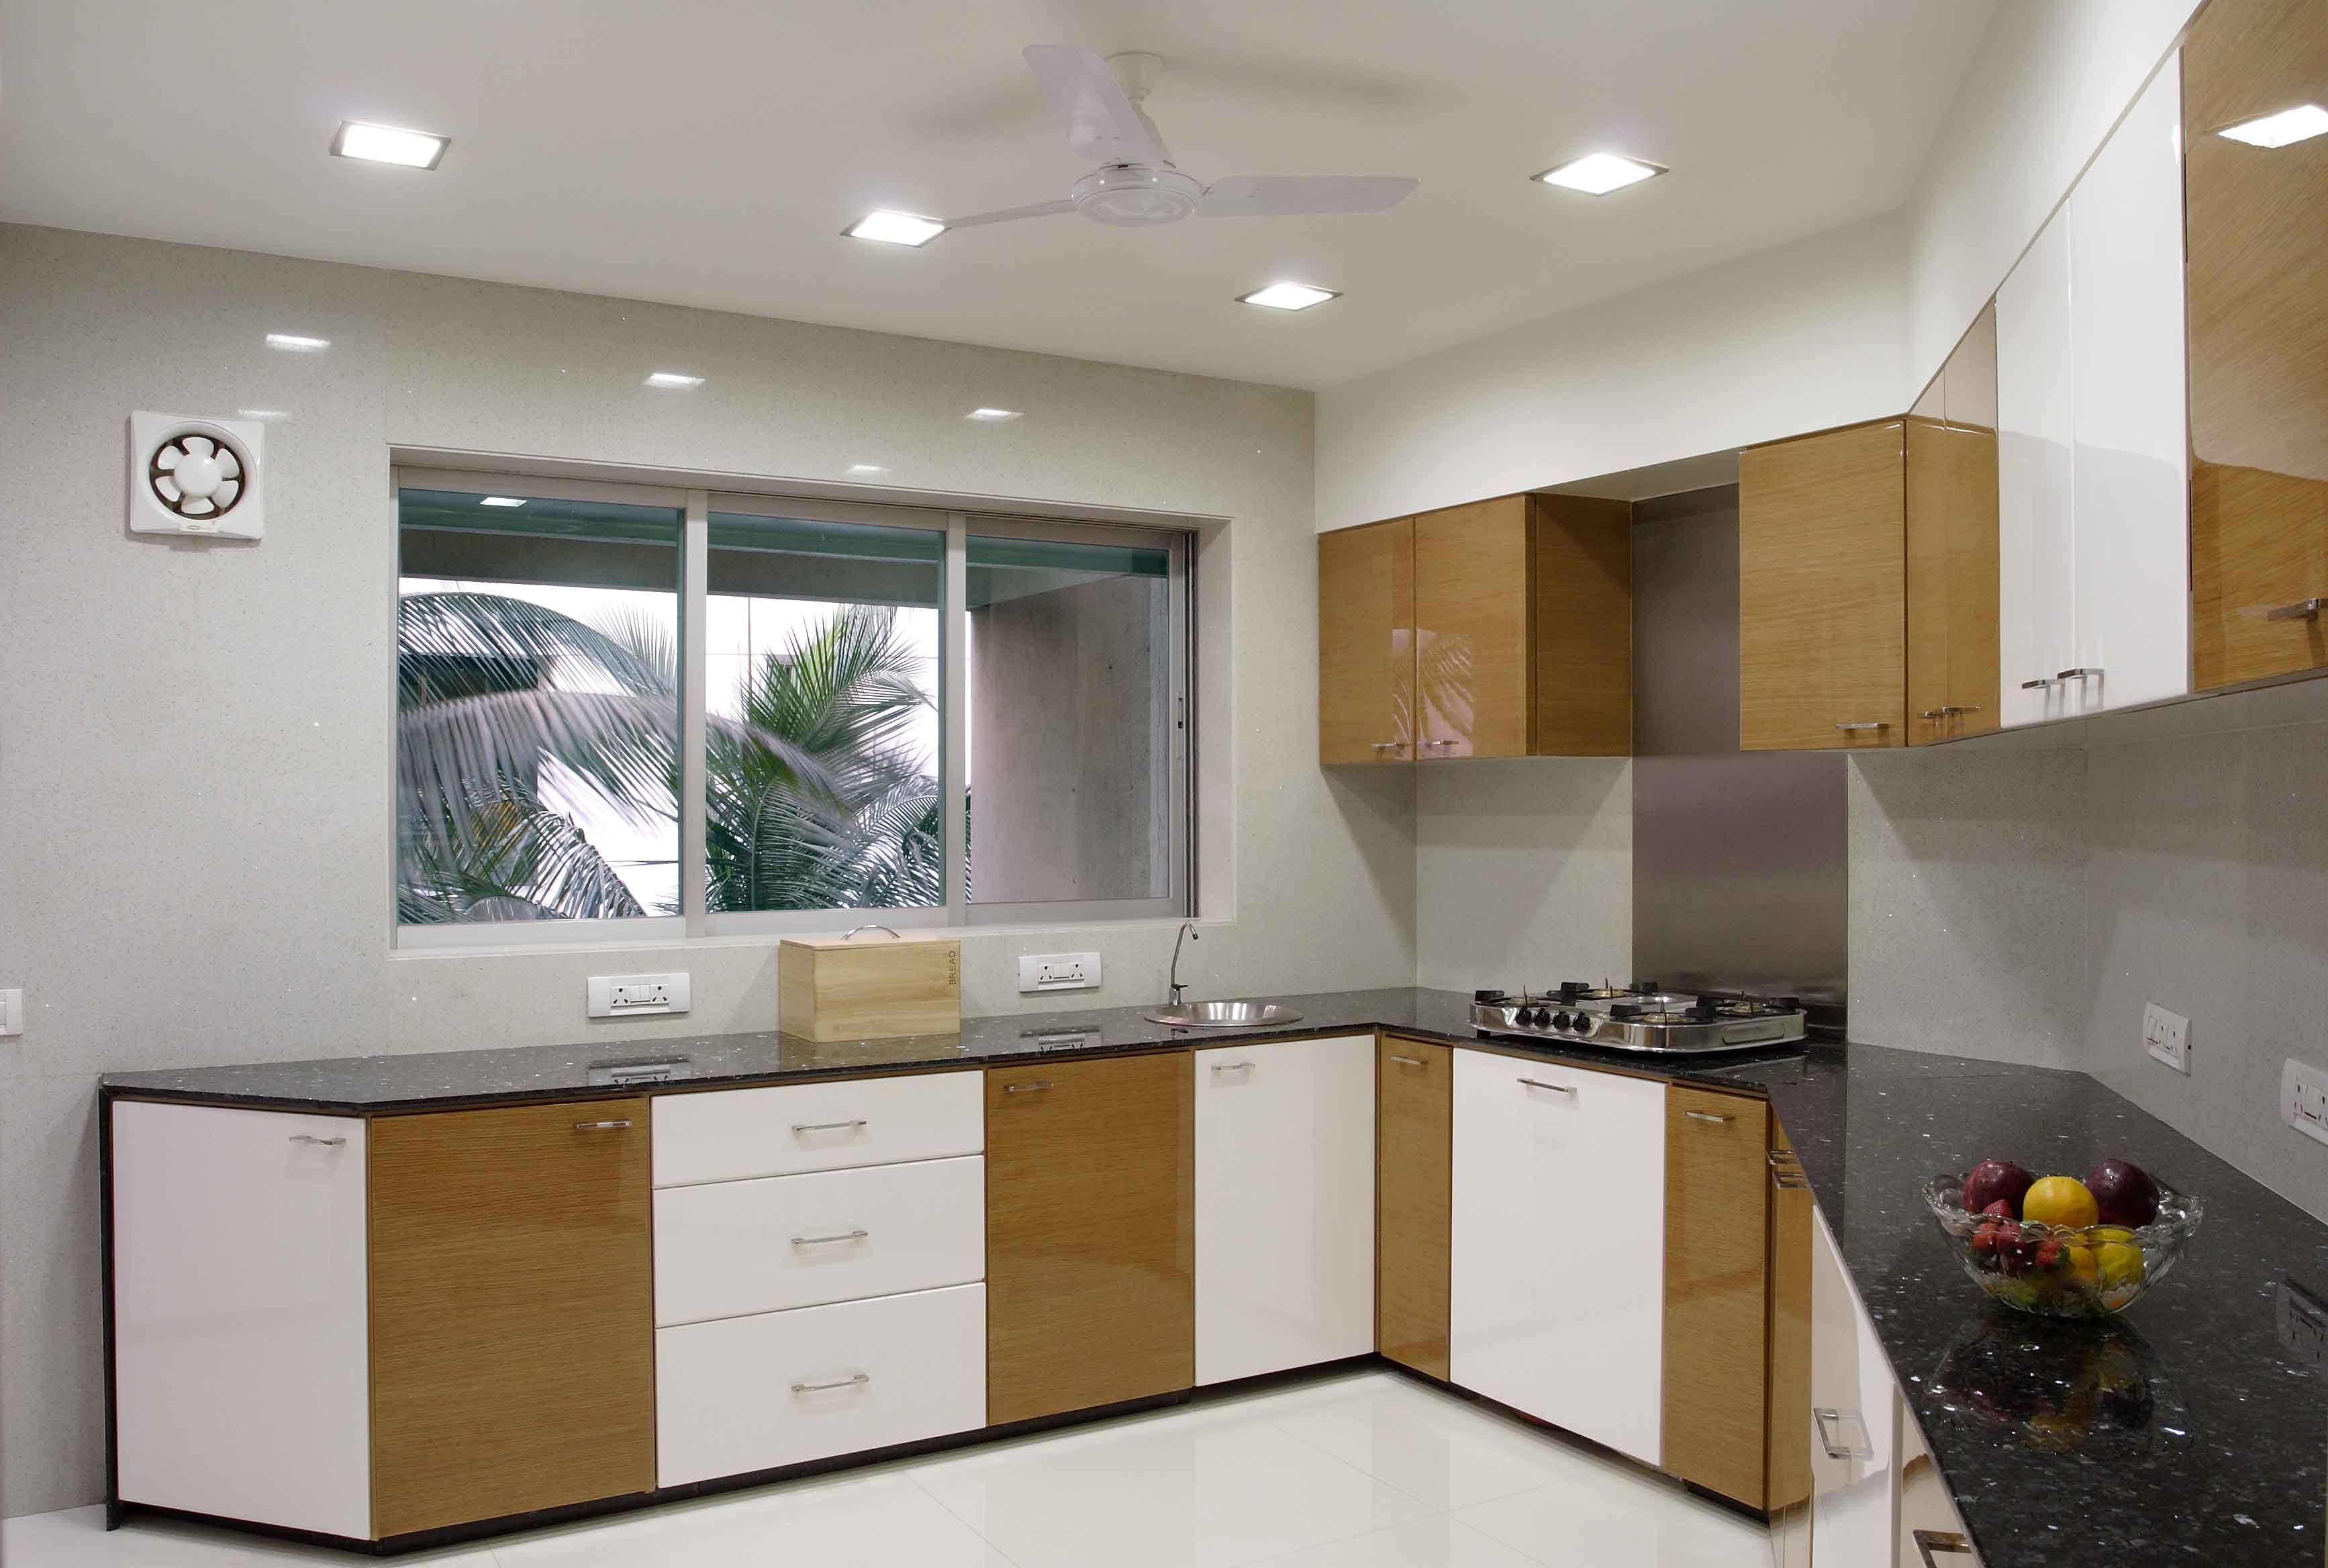 Kitchen Design India Interior Awesome Kitchen Designs Photo Gallery  Modular Kitchen Designs  Decor . Inspiration